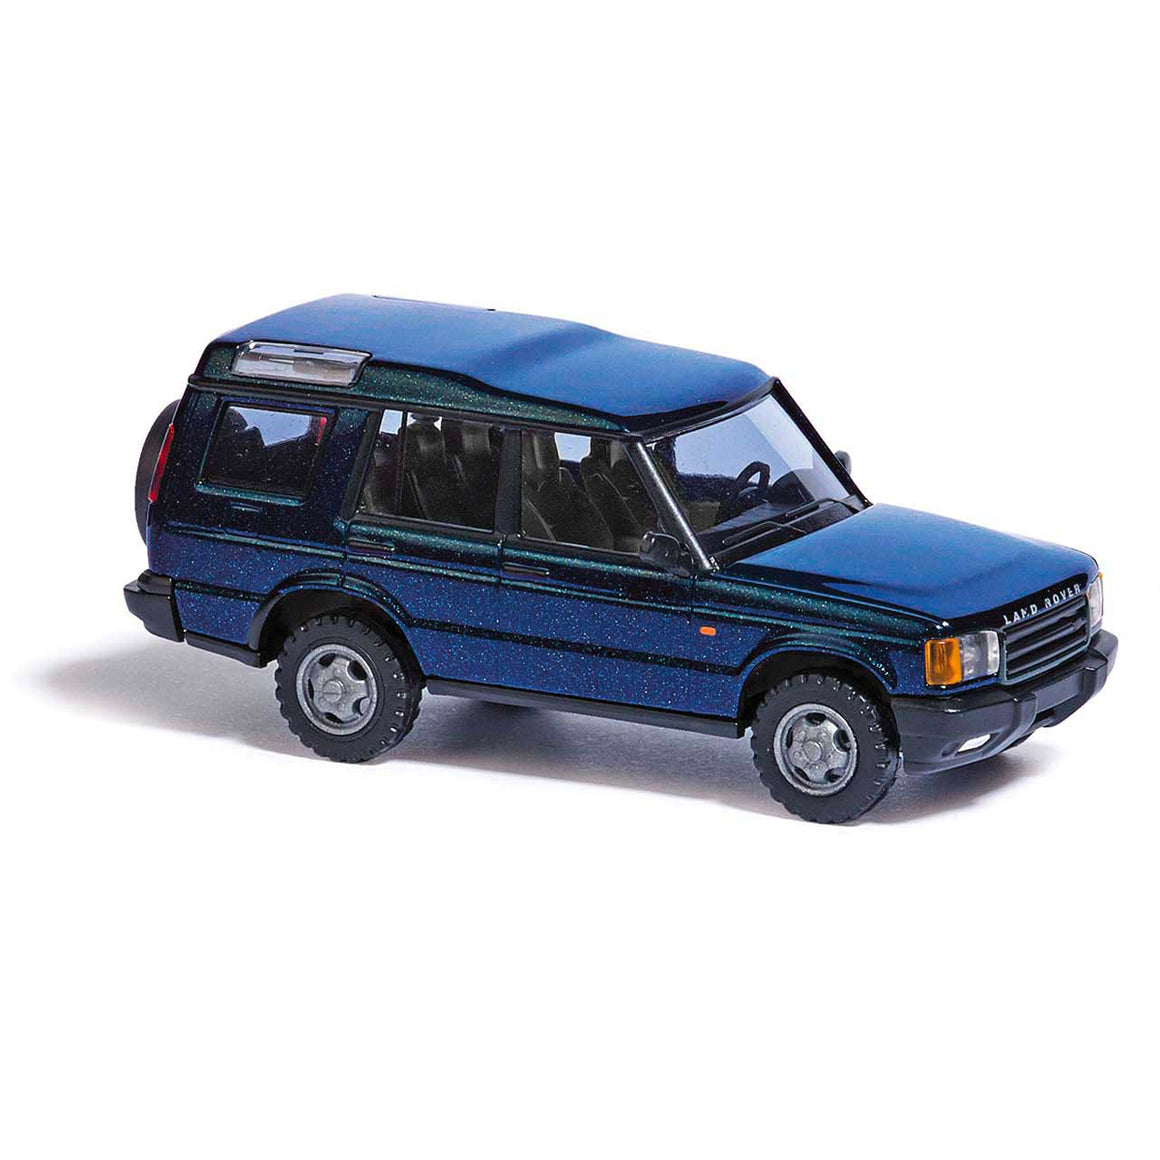 HO Scale: Land Rover Discovery - Metallic Blue